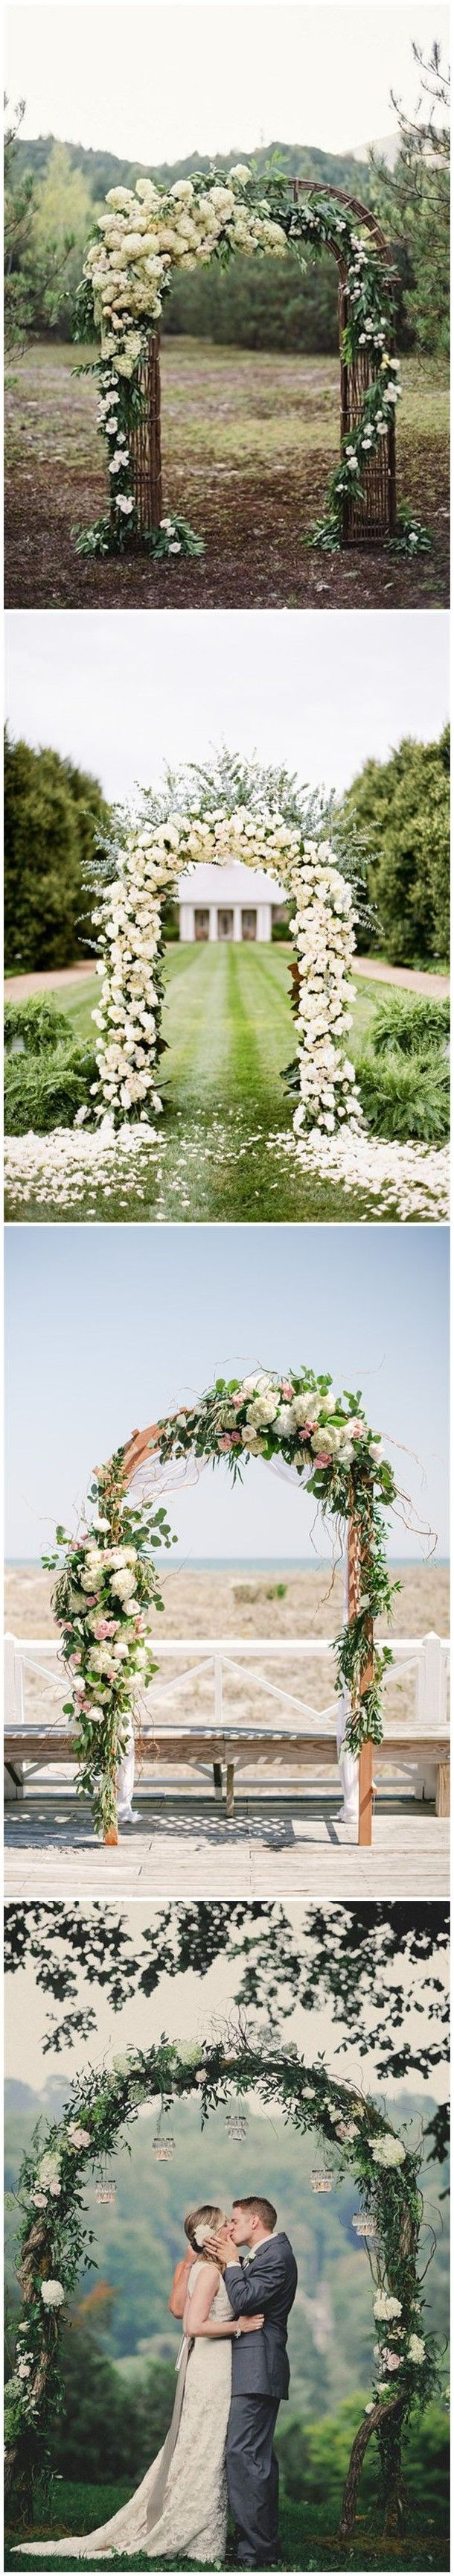 diy floral wedding arch decoration ideas floral wedding arch